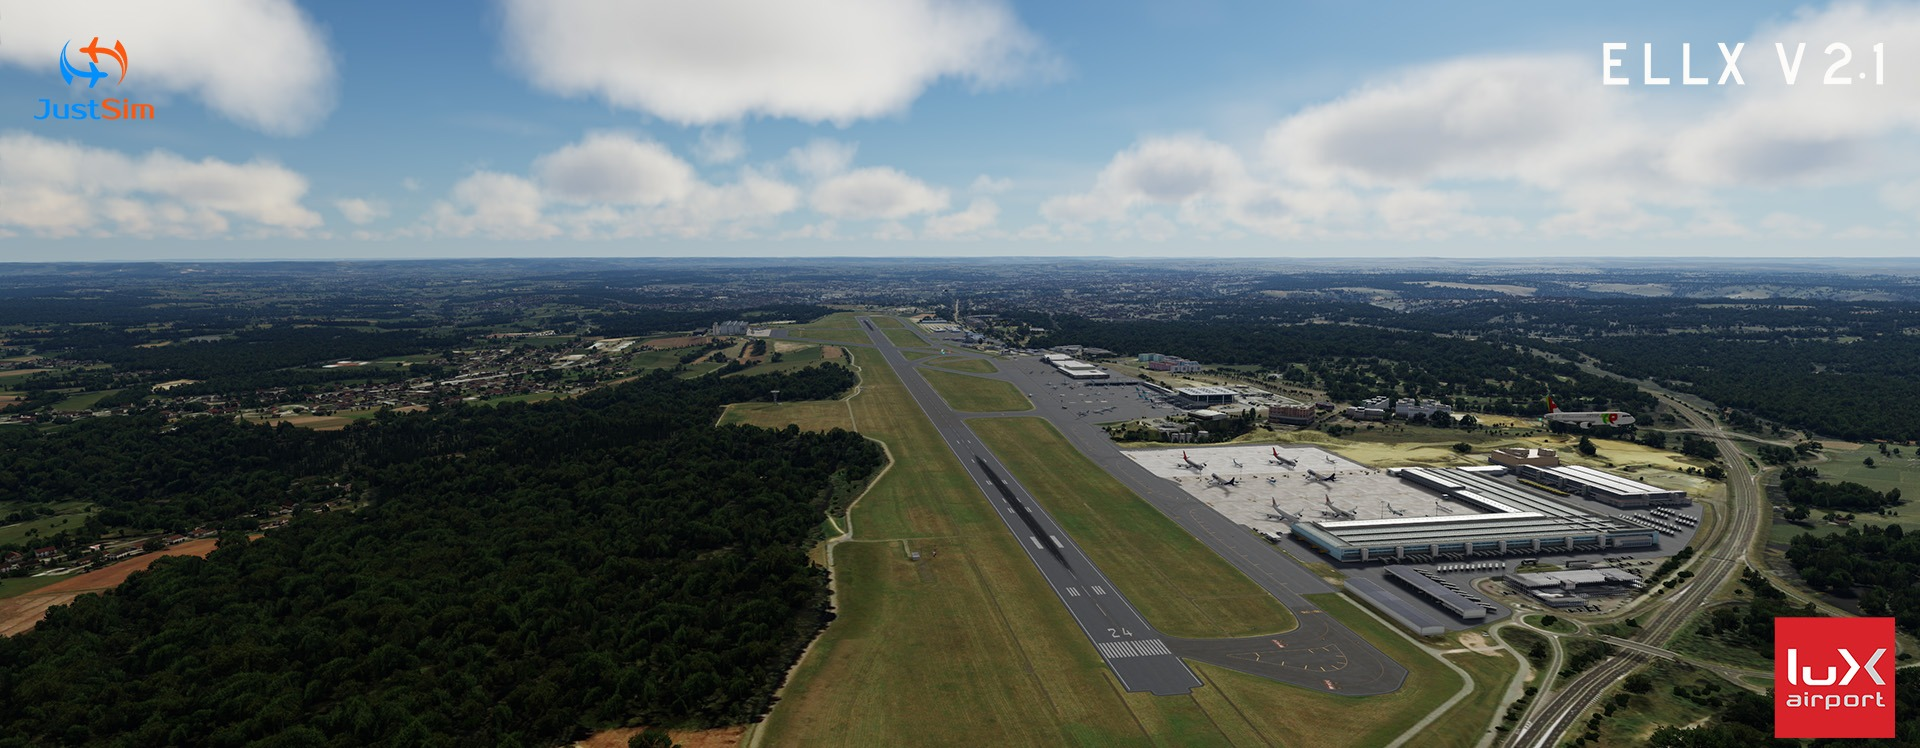 236376_07-07-2020_11-41-58 JustSim Luxembourg Findel Airport V2.1 for P3D Released